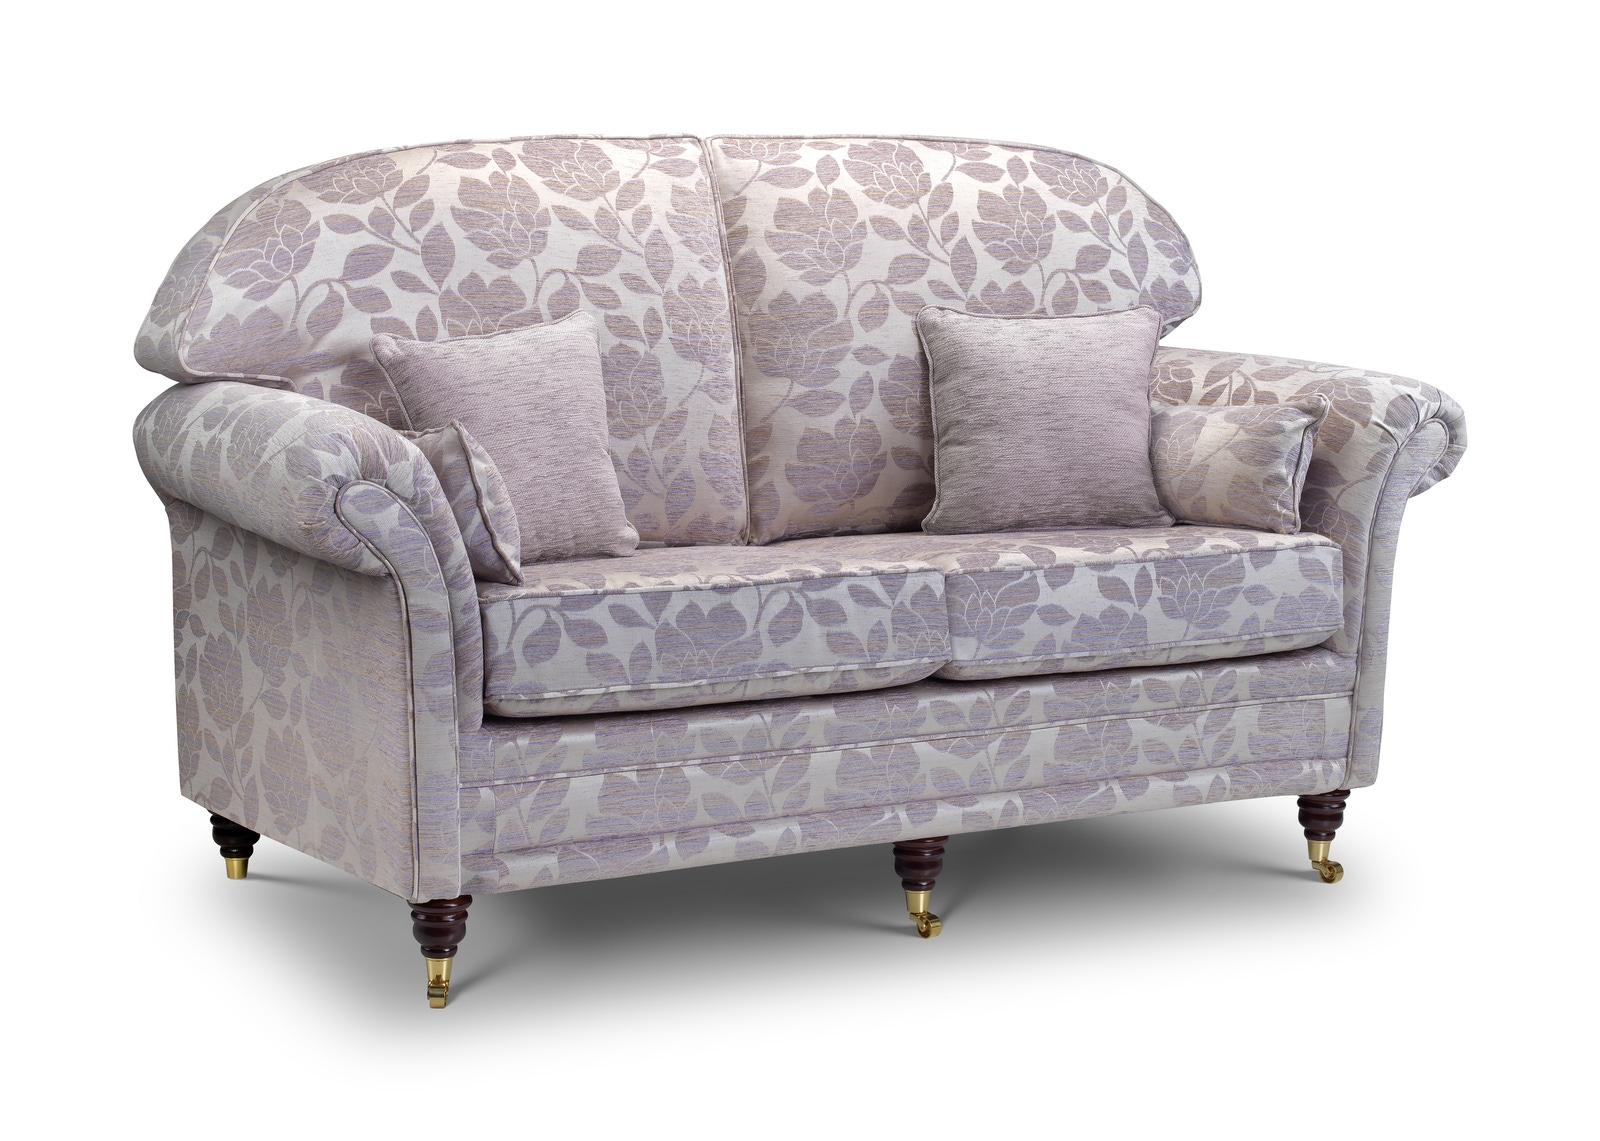 Cristallo Sofa MAIN